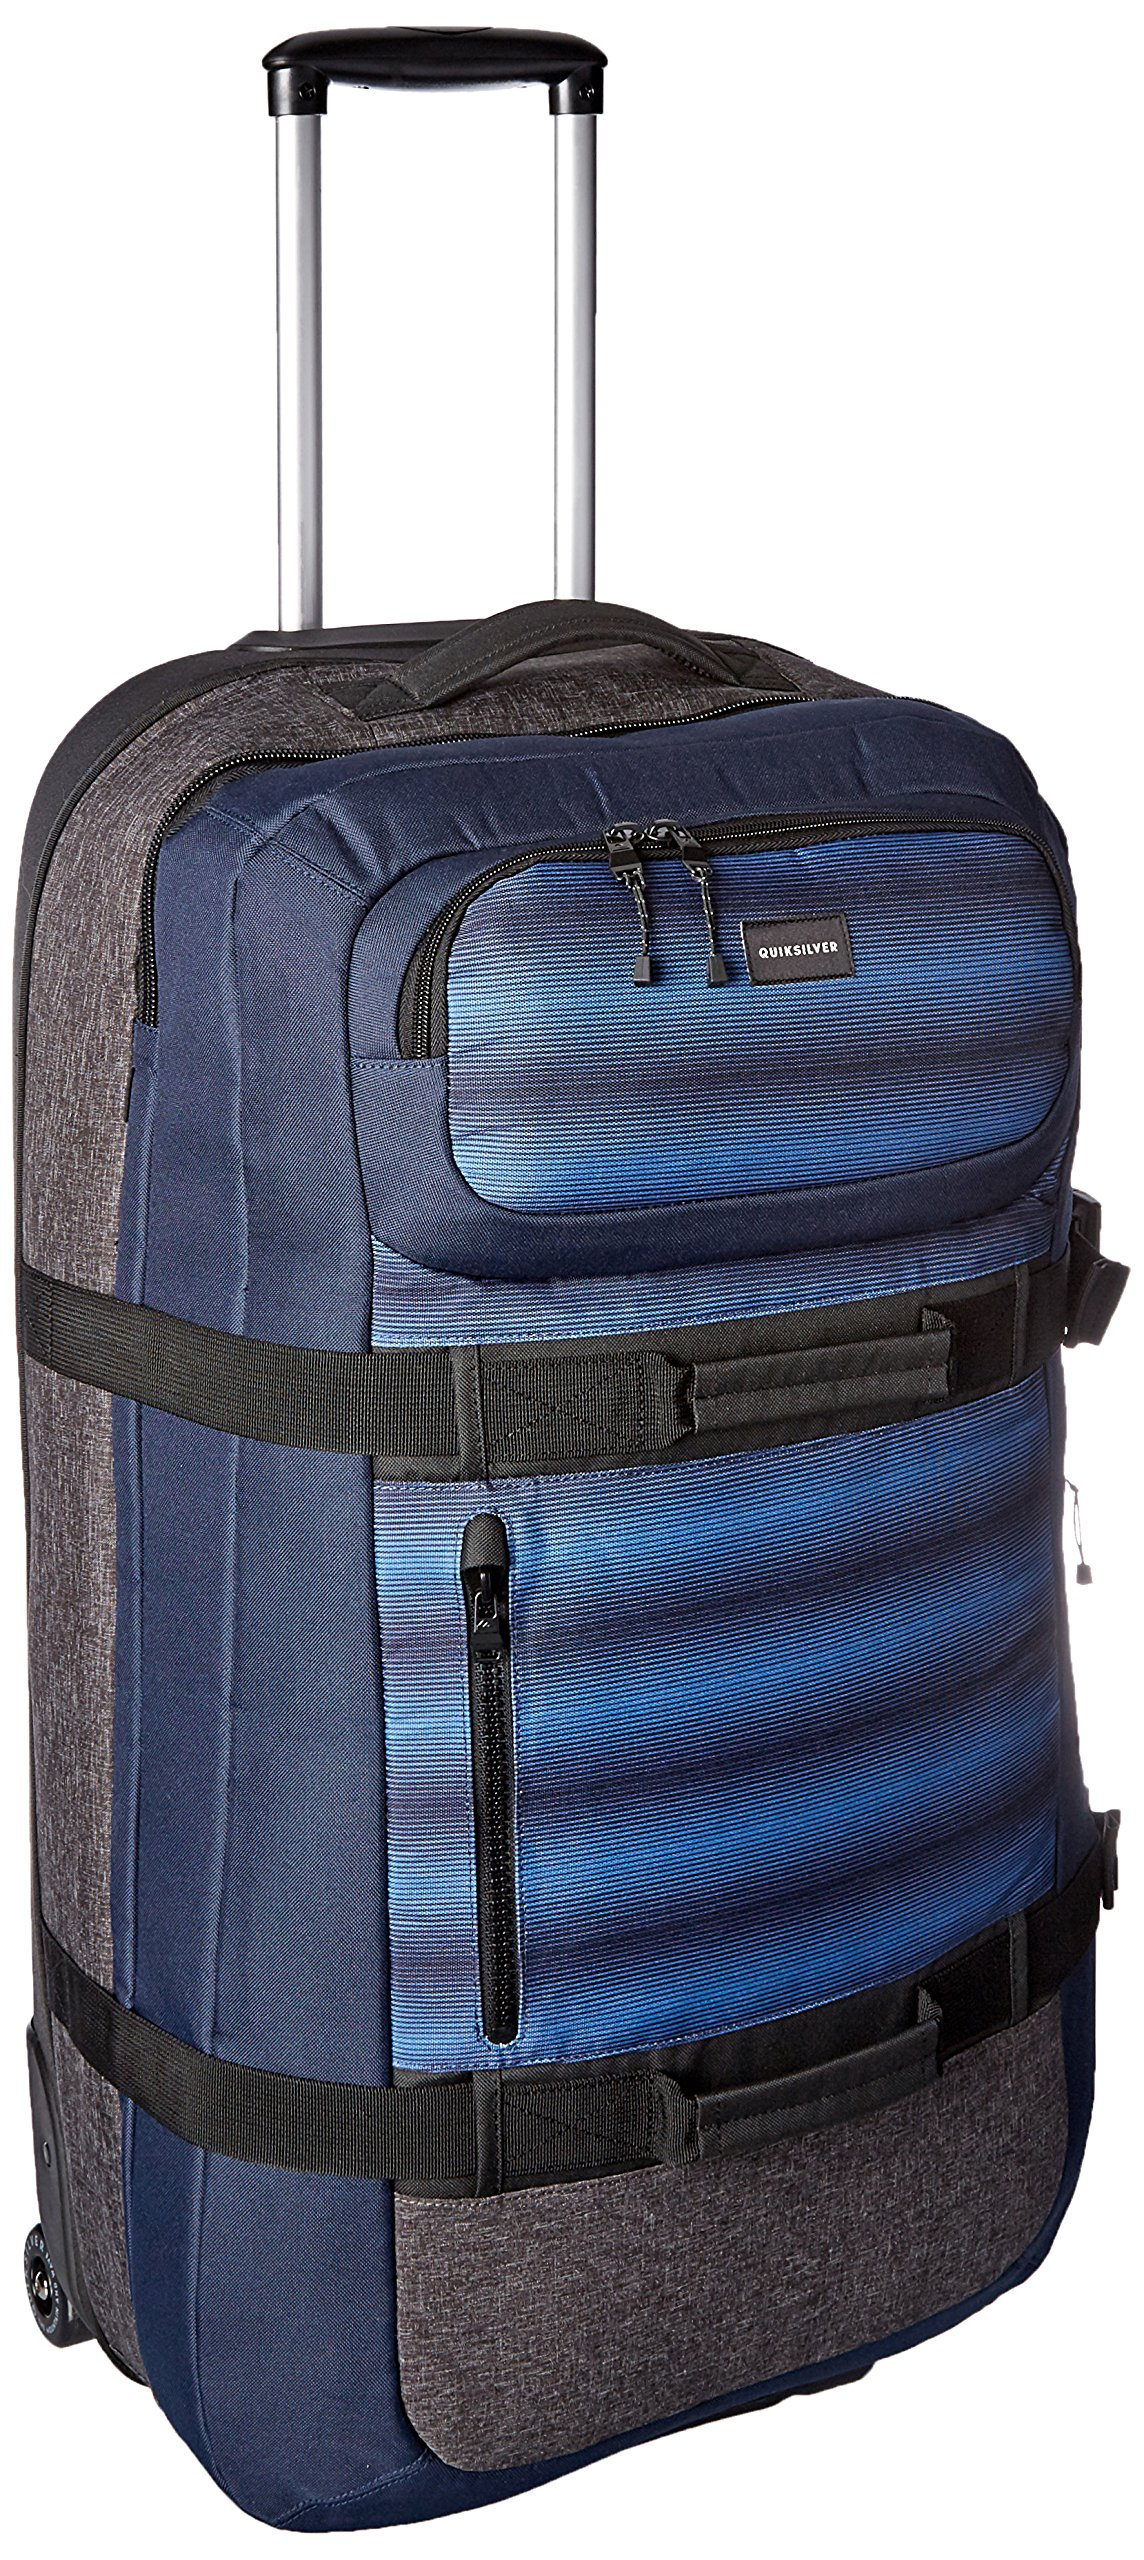 Quiksilver Young Men's Reach Luggage Roller Bag Accessory, -navy blazer, One Size